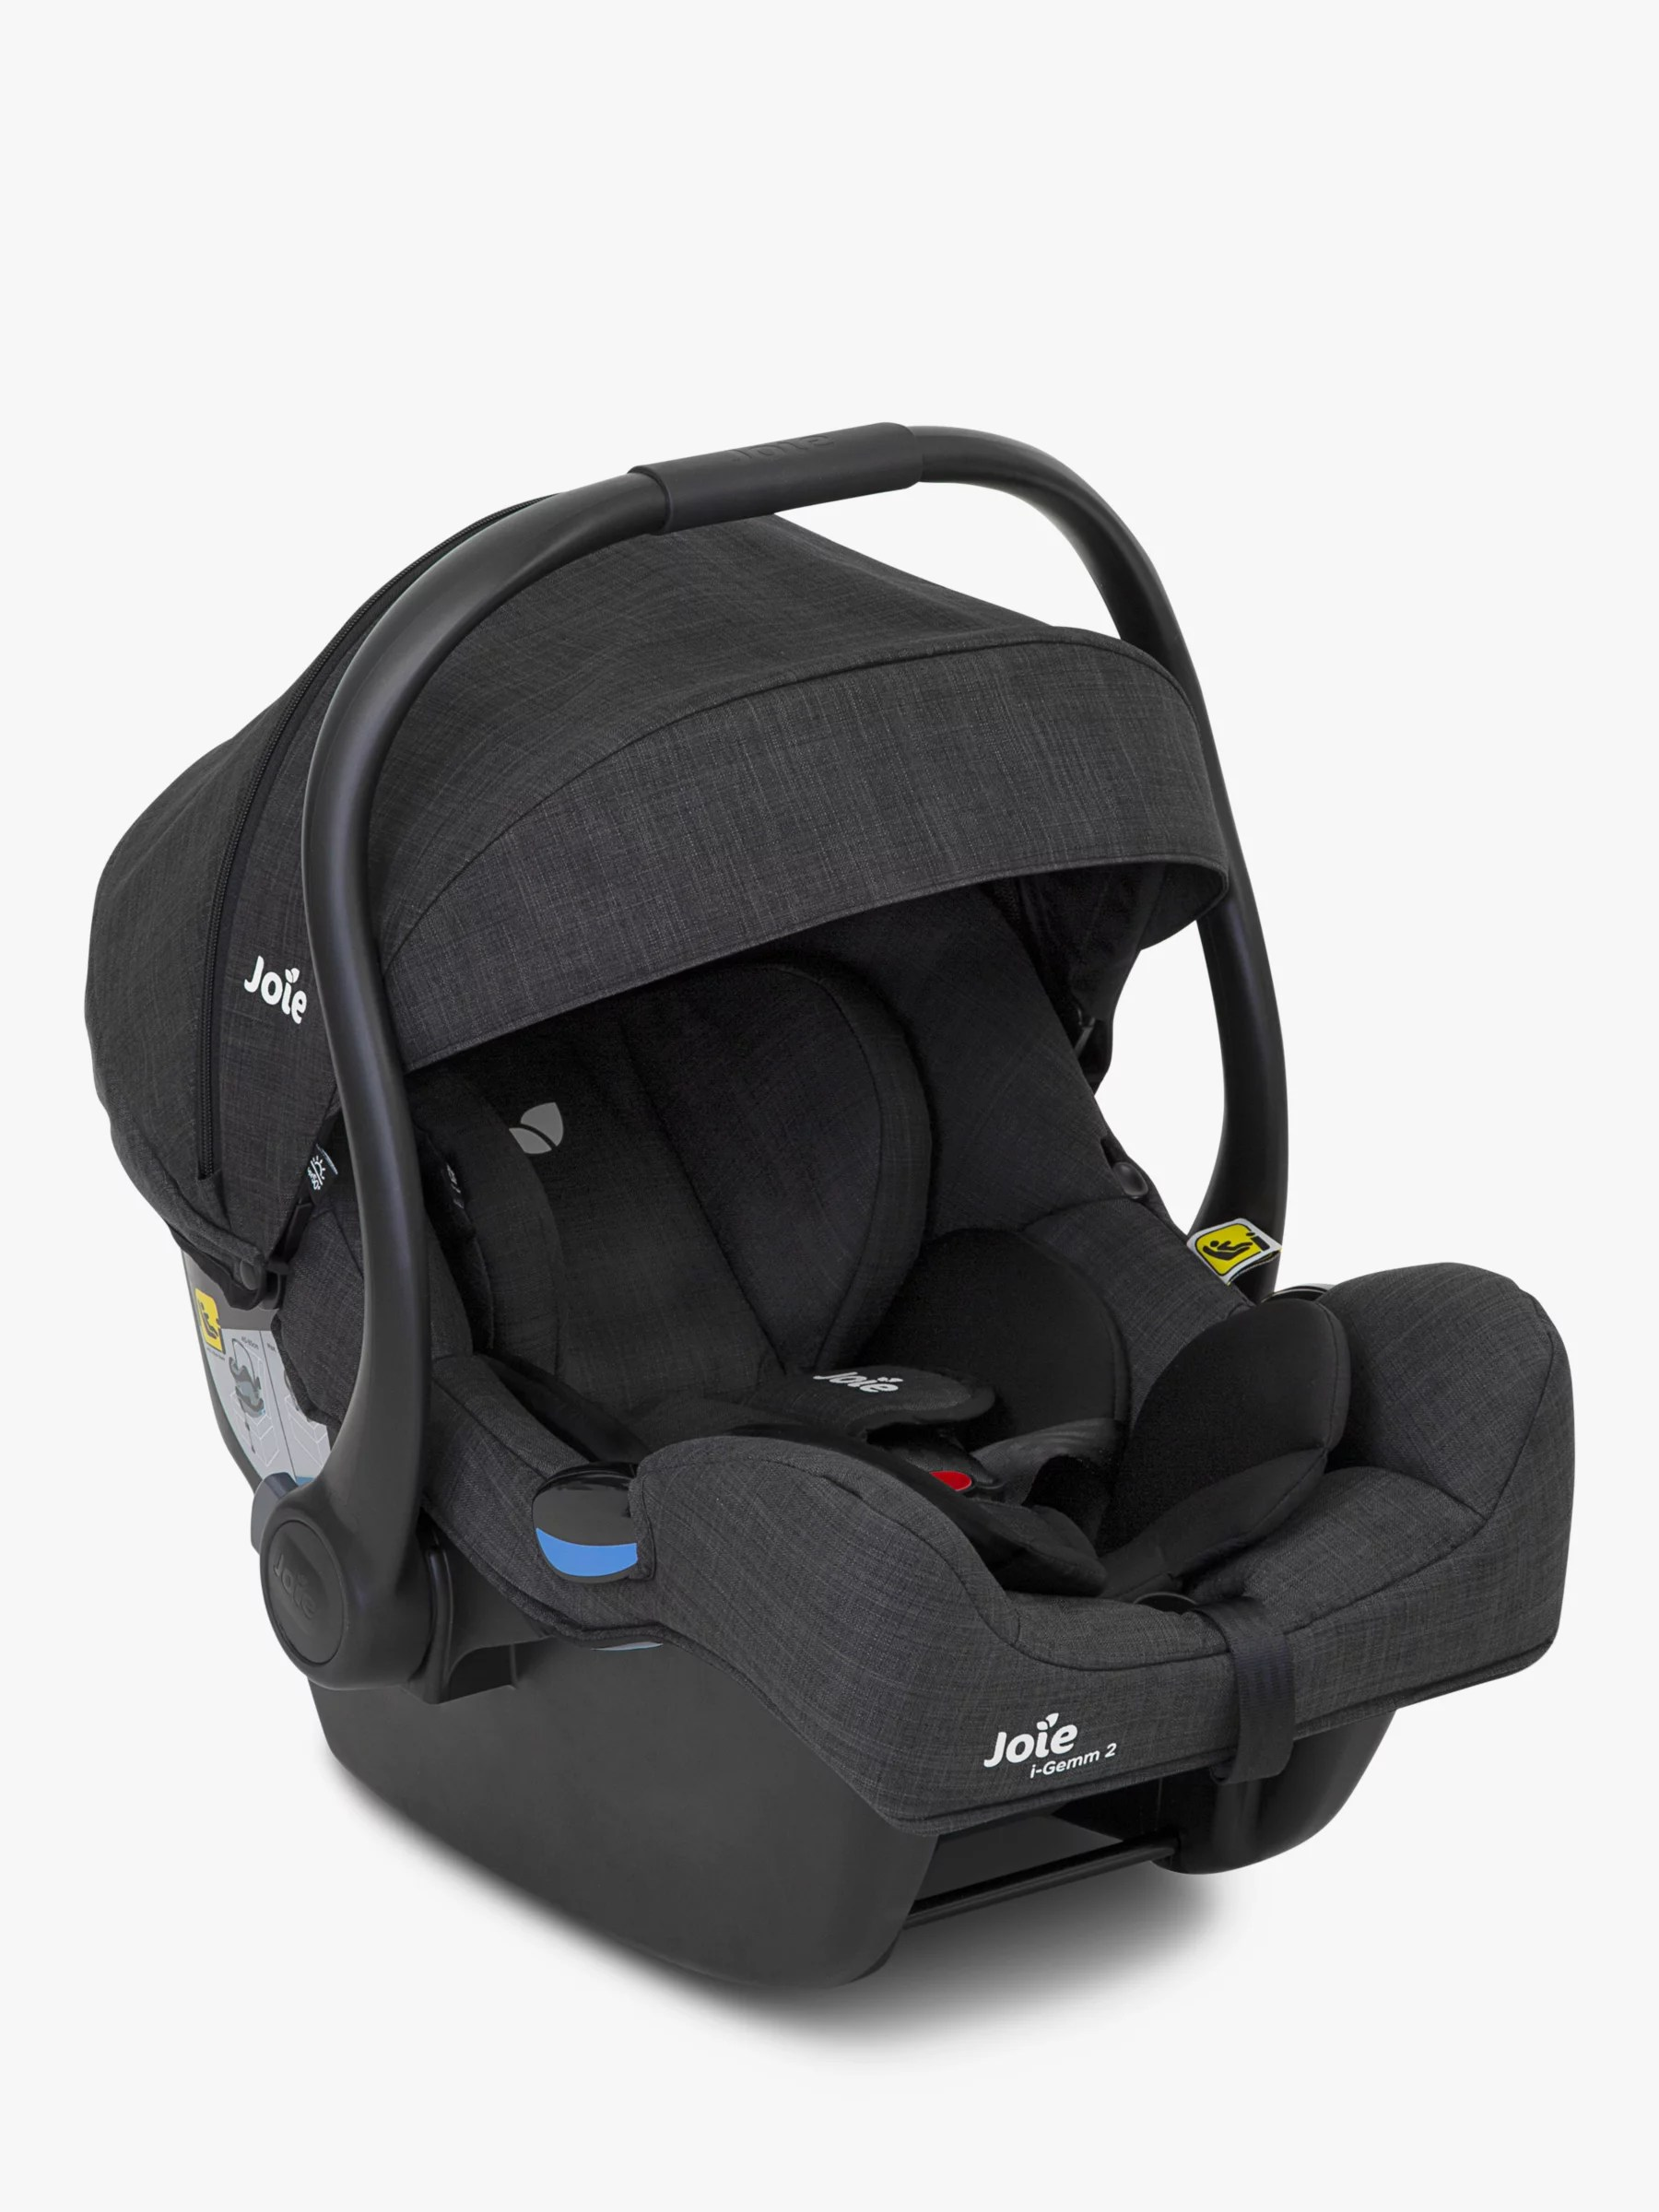 Joie Baby Car Seat Usa Joie Baby I Gemm Group Baby Car Seat Pavement Grey